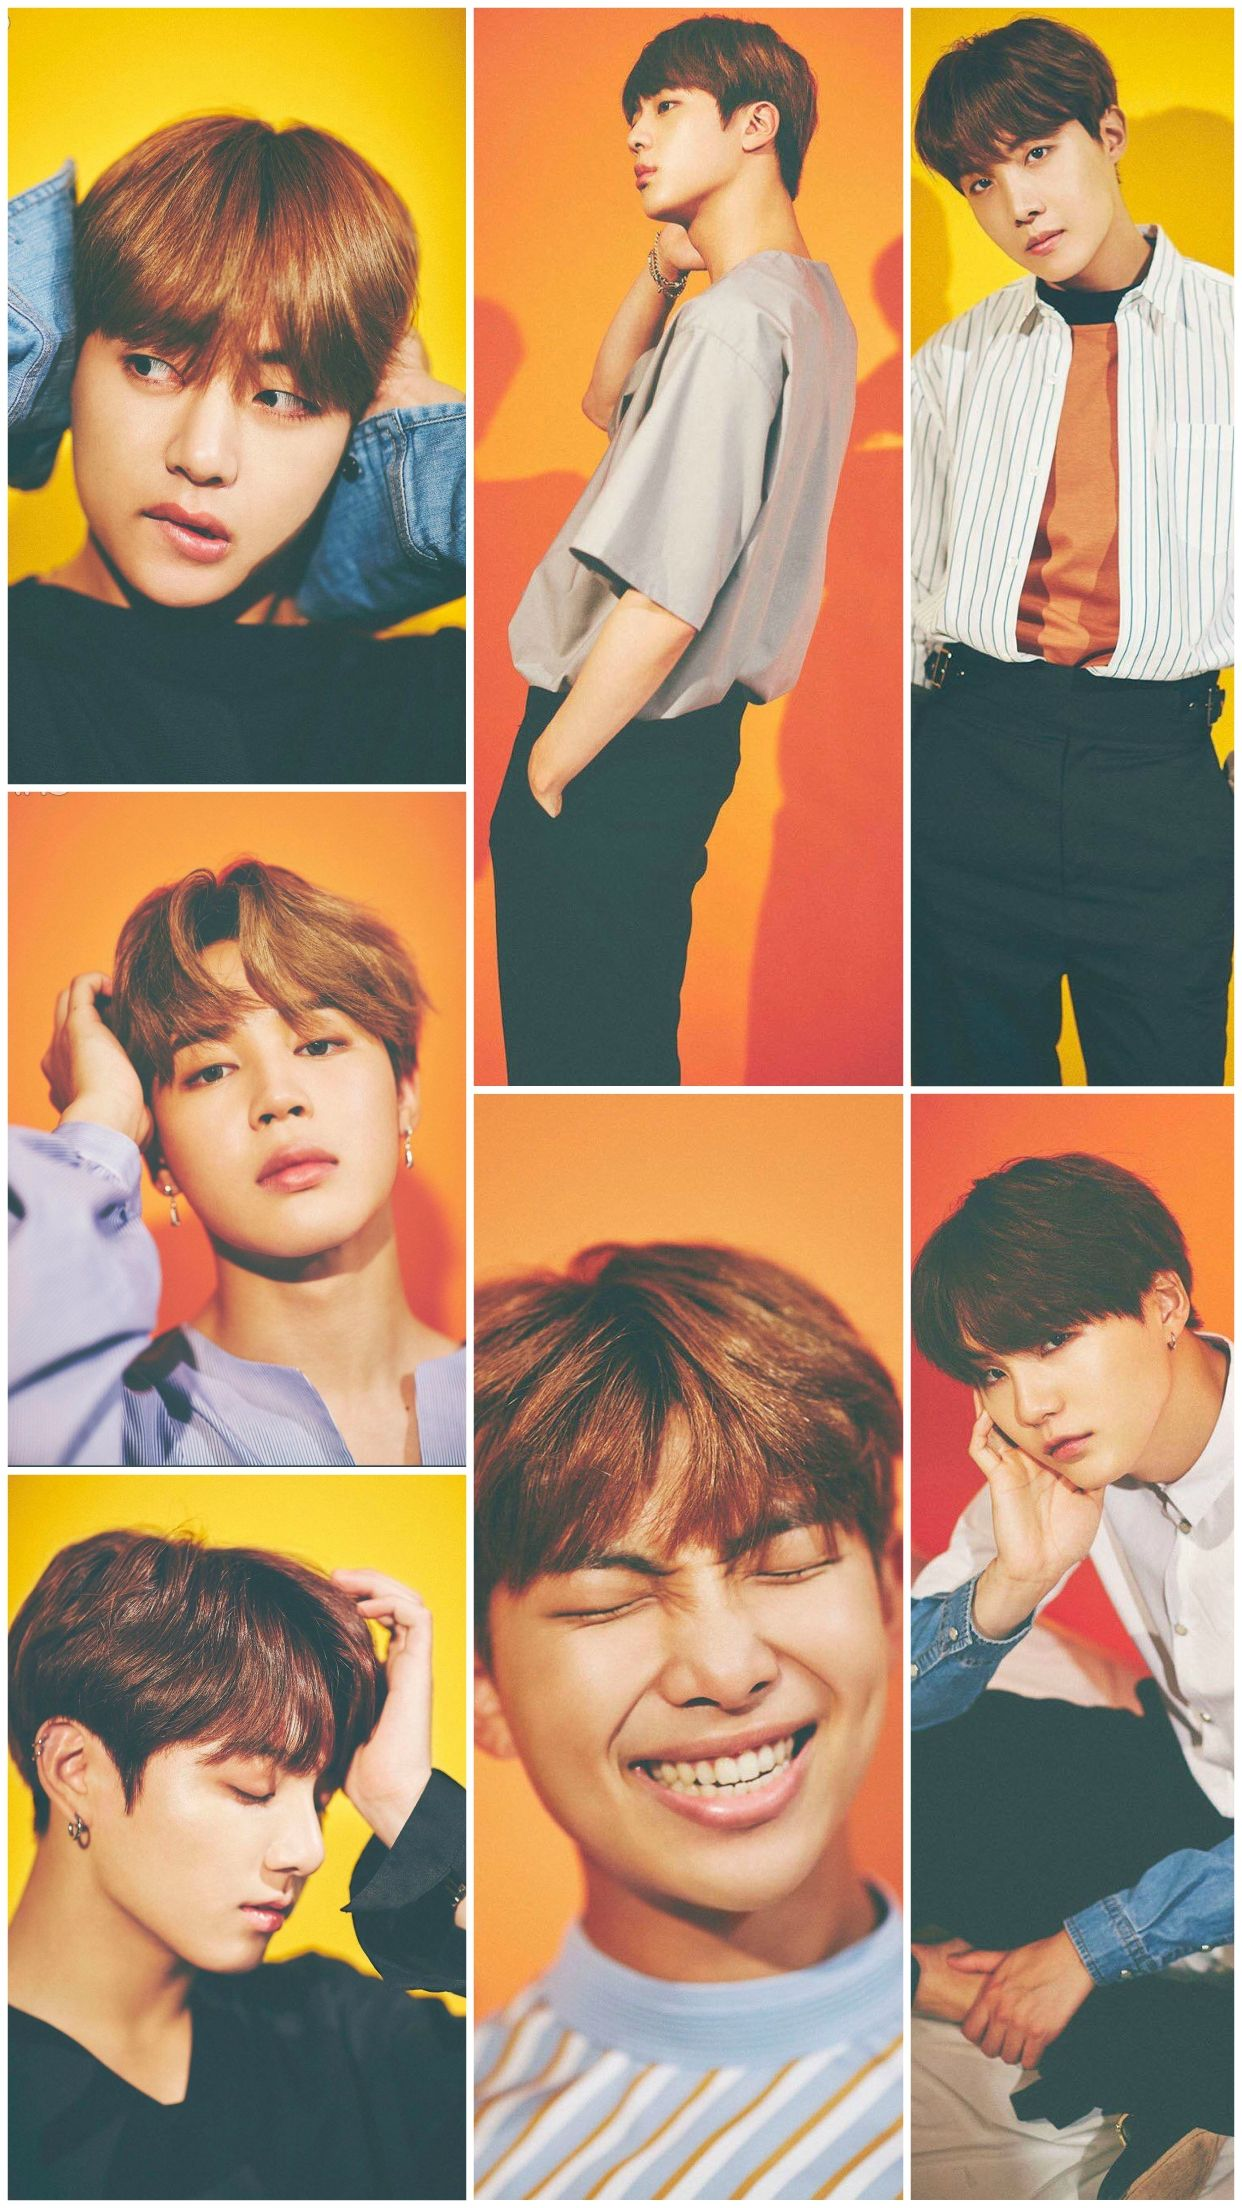 BTS NONNO 2017 Iphone 6 plus wallpaper Credit stphn